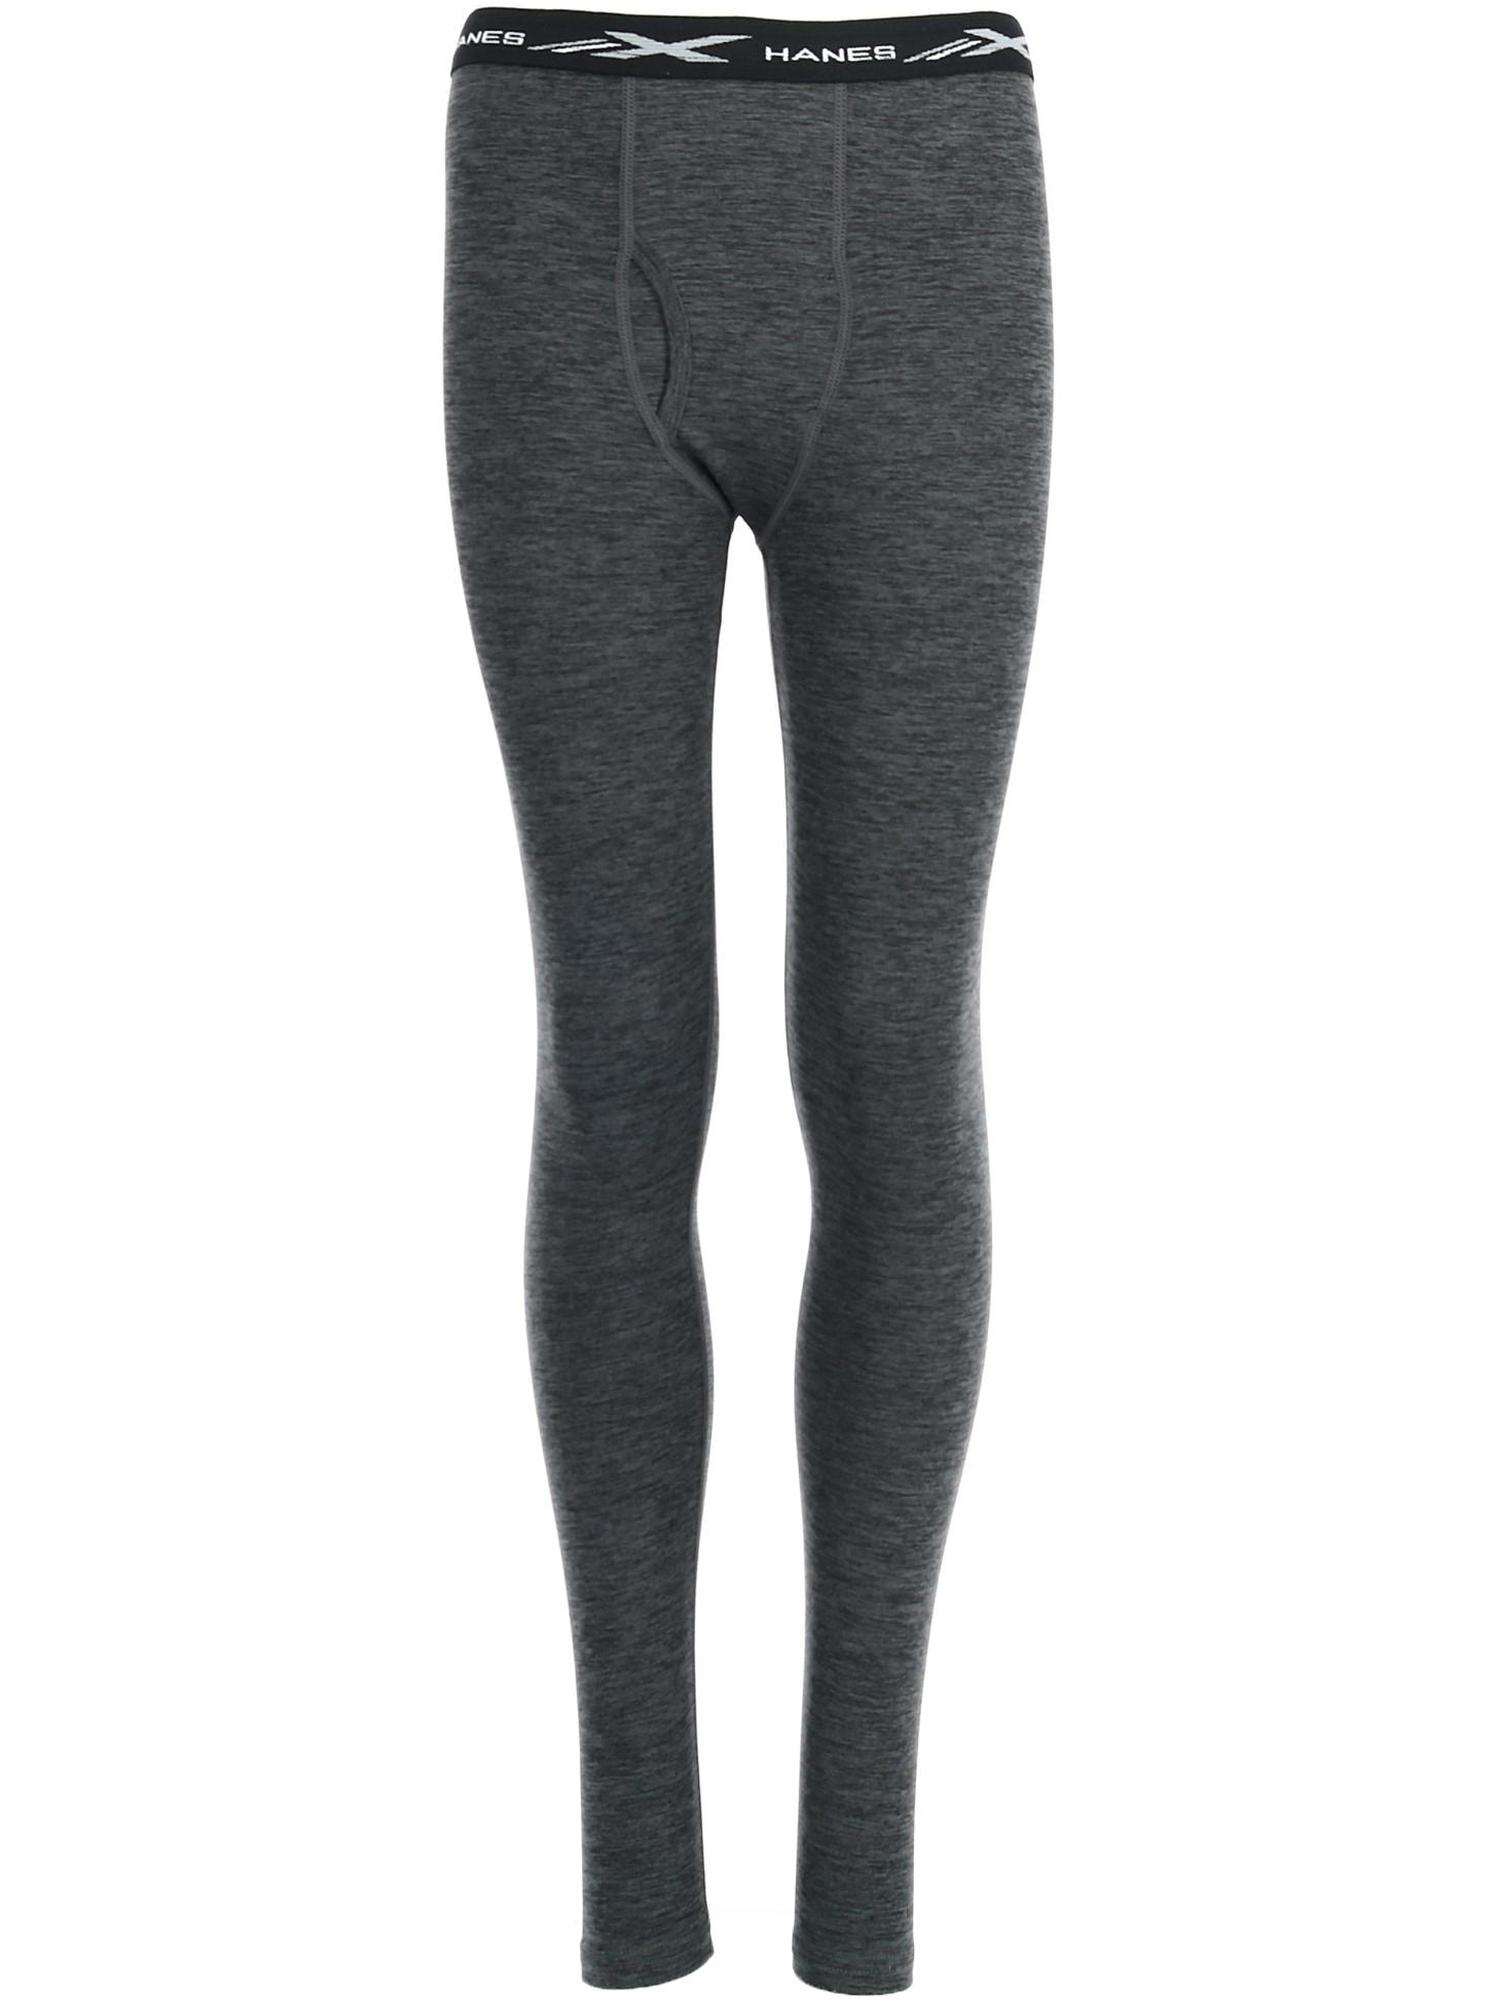 Boys X Temp Thermal Pant with Odor Control